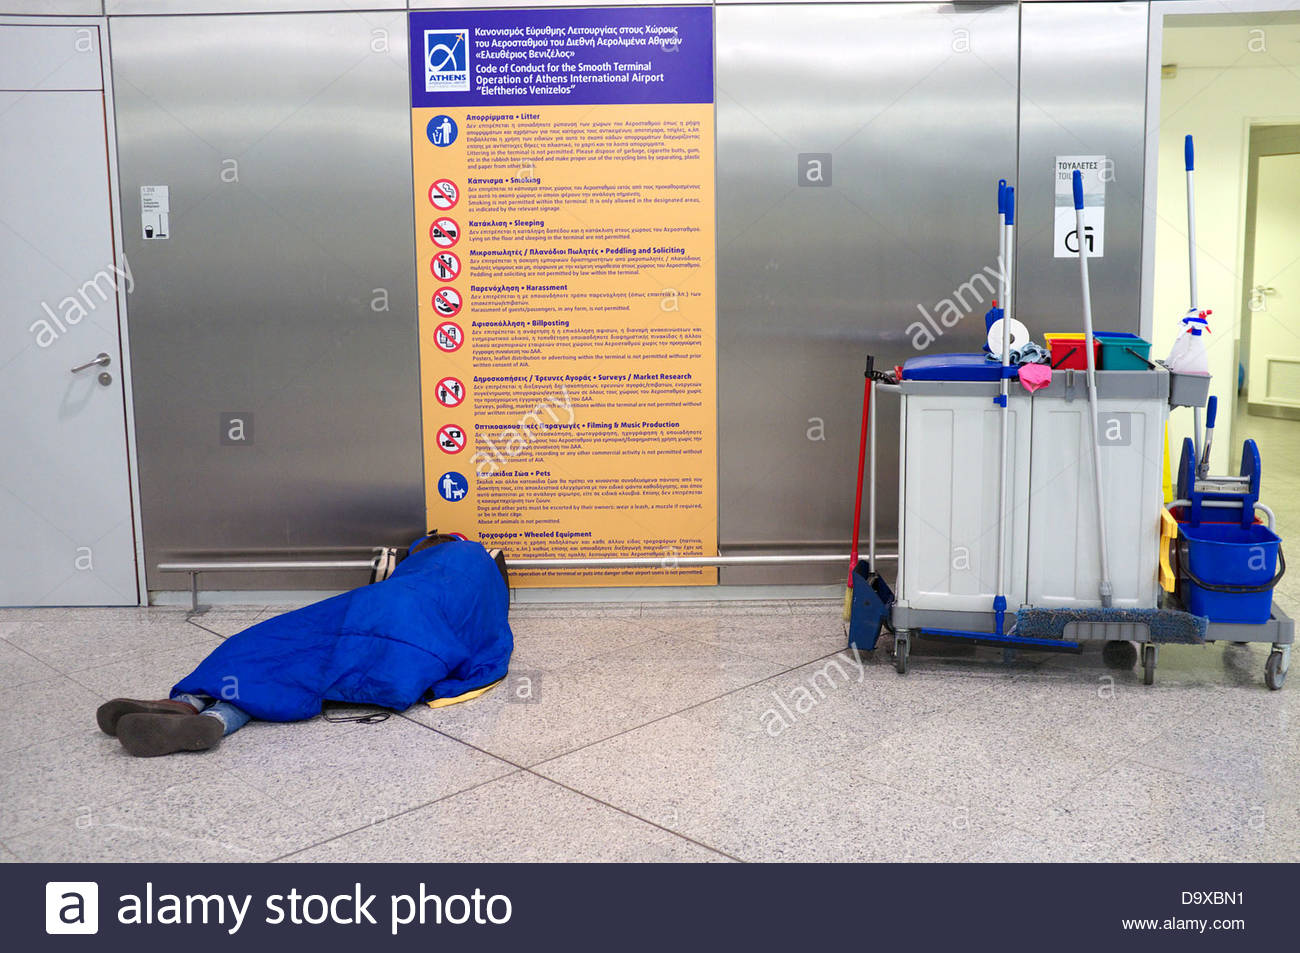 Greek economic crisis - homeless man sleeping by the toilet entrancehom in Athens International Airport 'Eleftherios - Stock Image